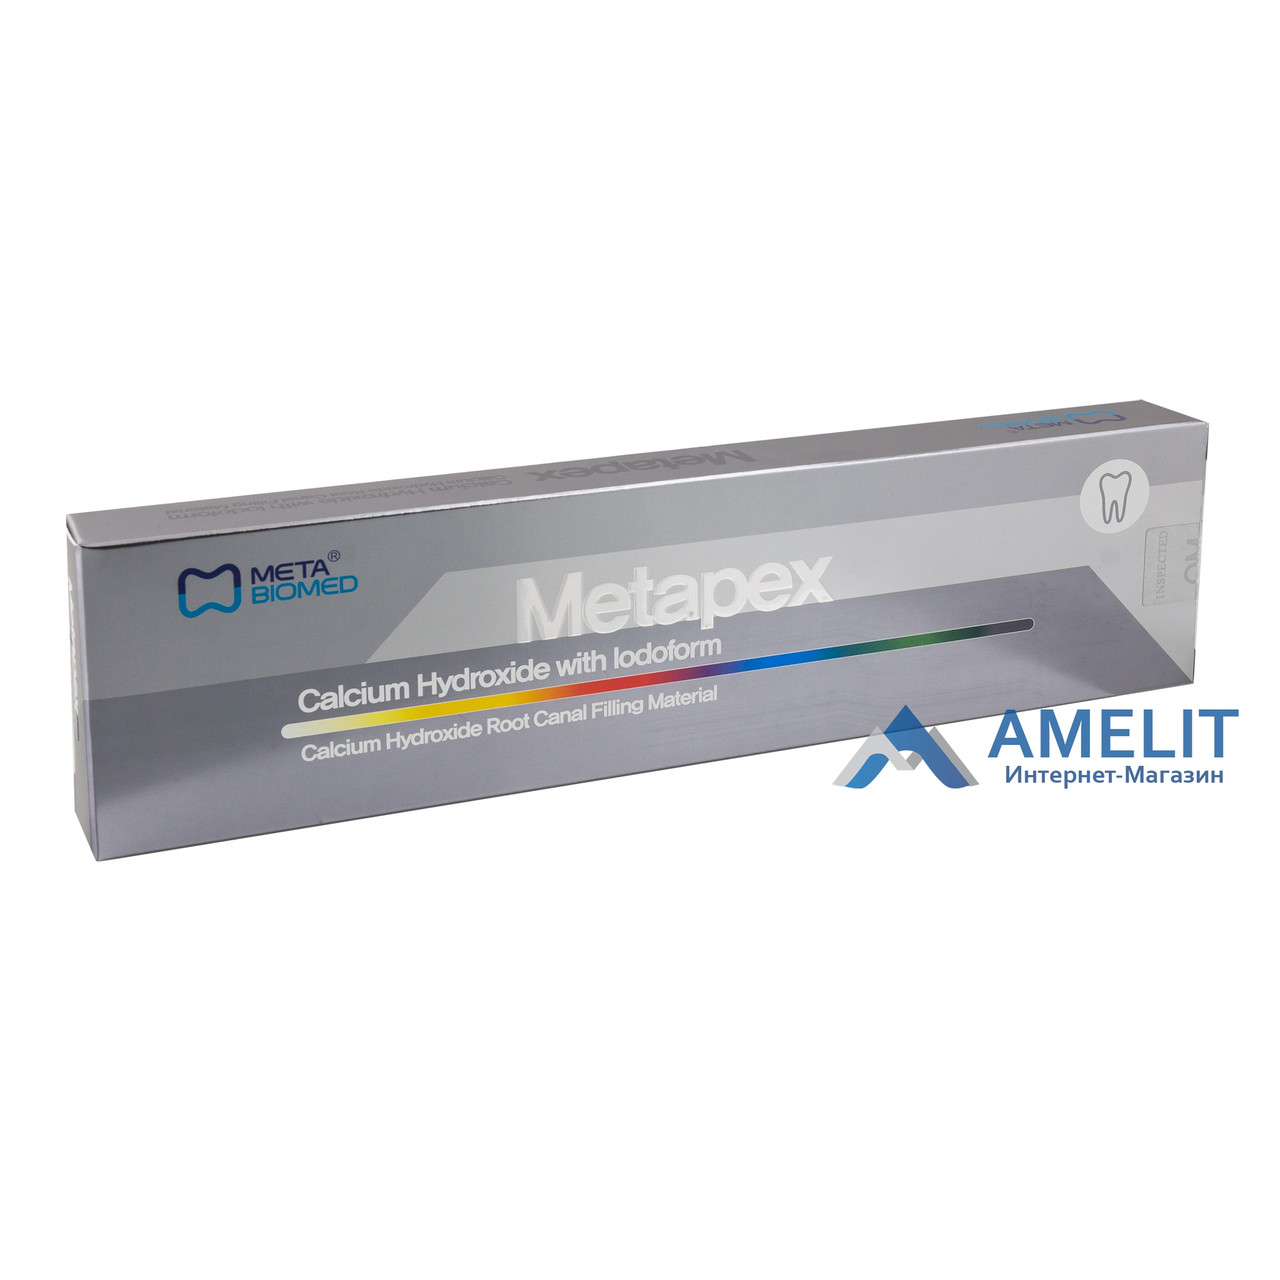 Метапекс (Metapex, Meta Biomed), шприц 2,2г